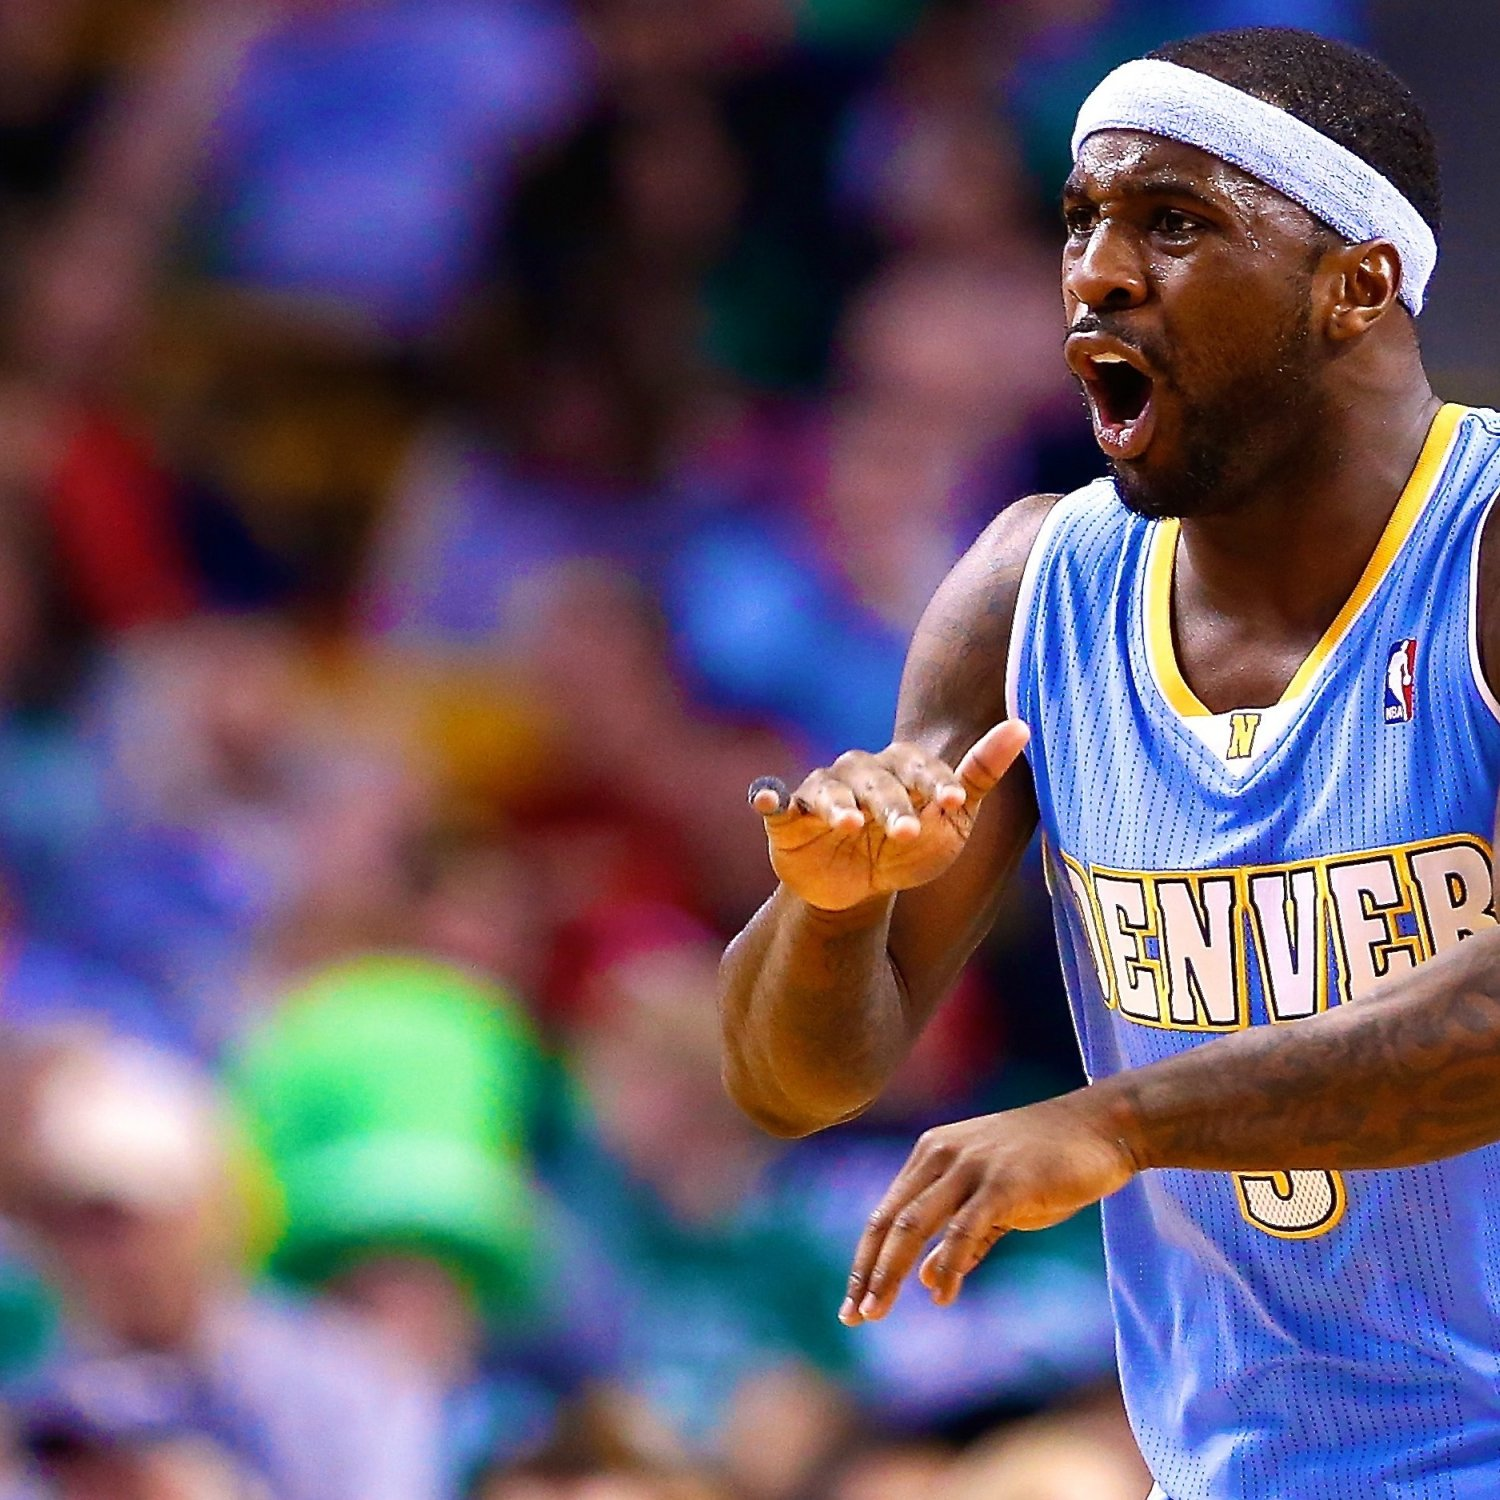 Nuggets Updated Roster: Ty Lawson Injury: Updates On Nuggets Guard's Hamstring And